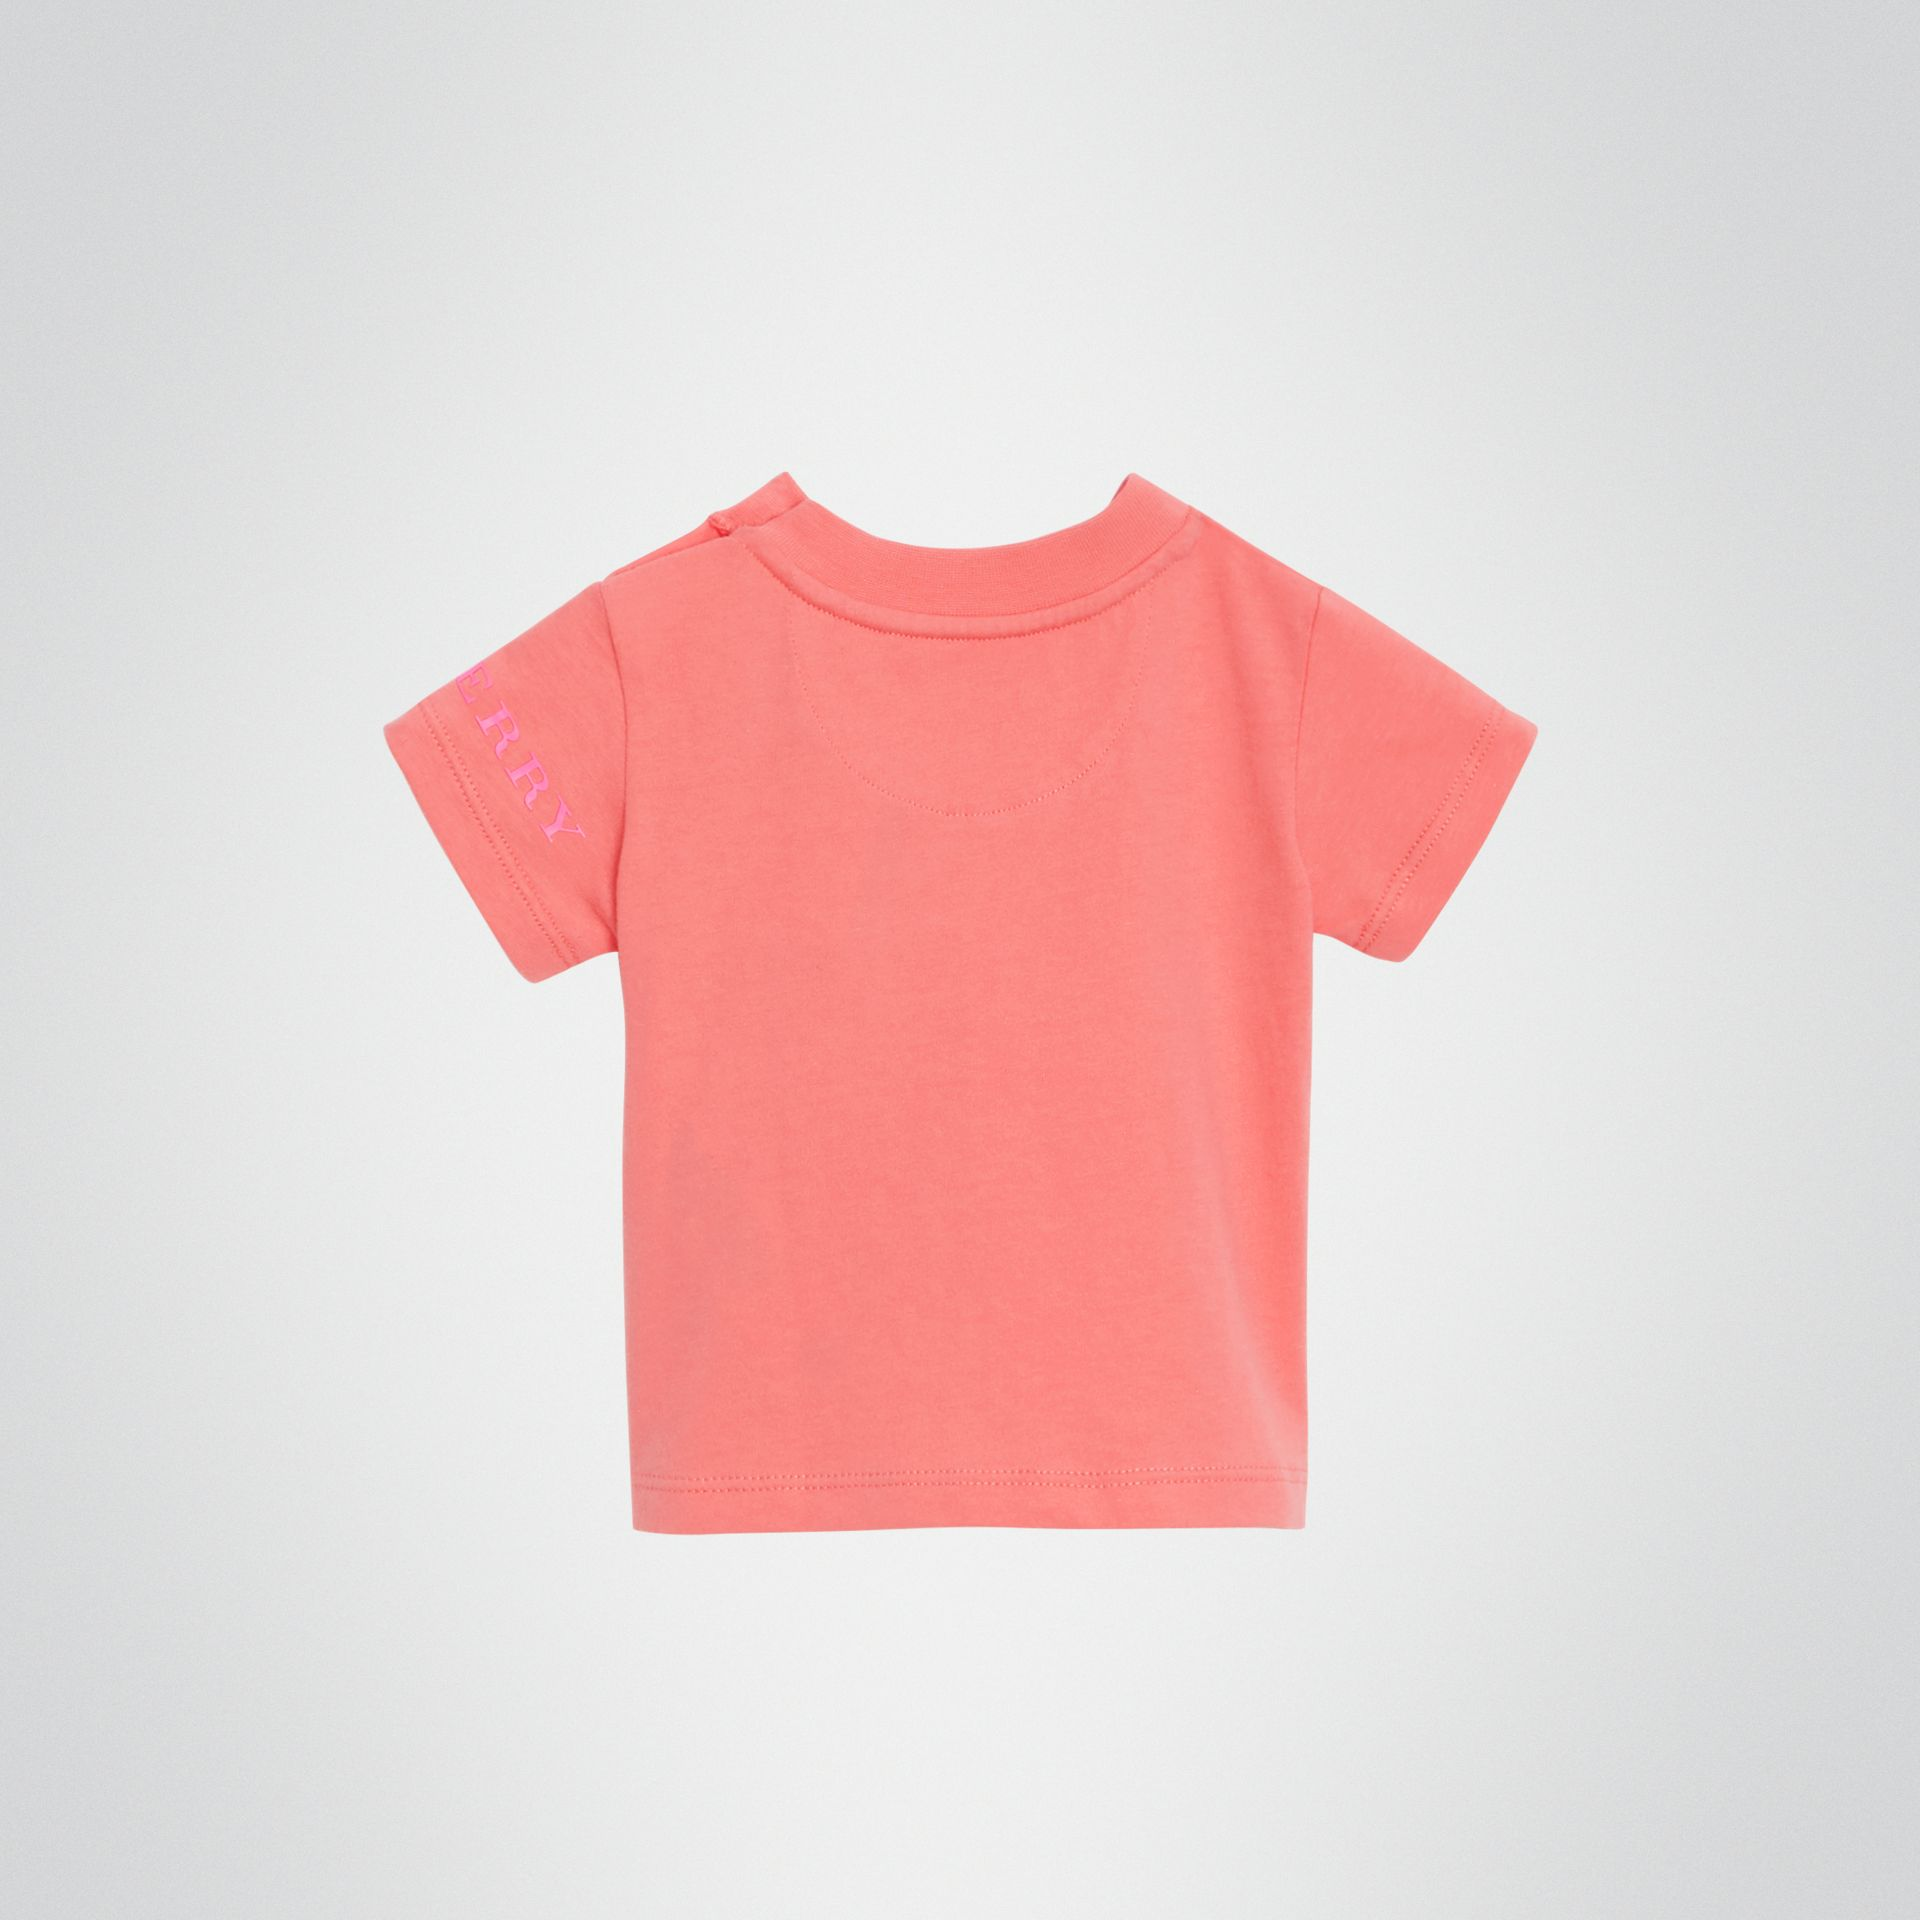 T-shirt en coton avec logo imprimé (Rose Vif) - Enfant | Burberry - photo de la galerie 3